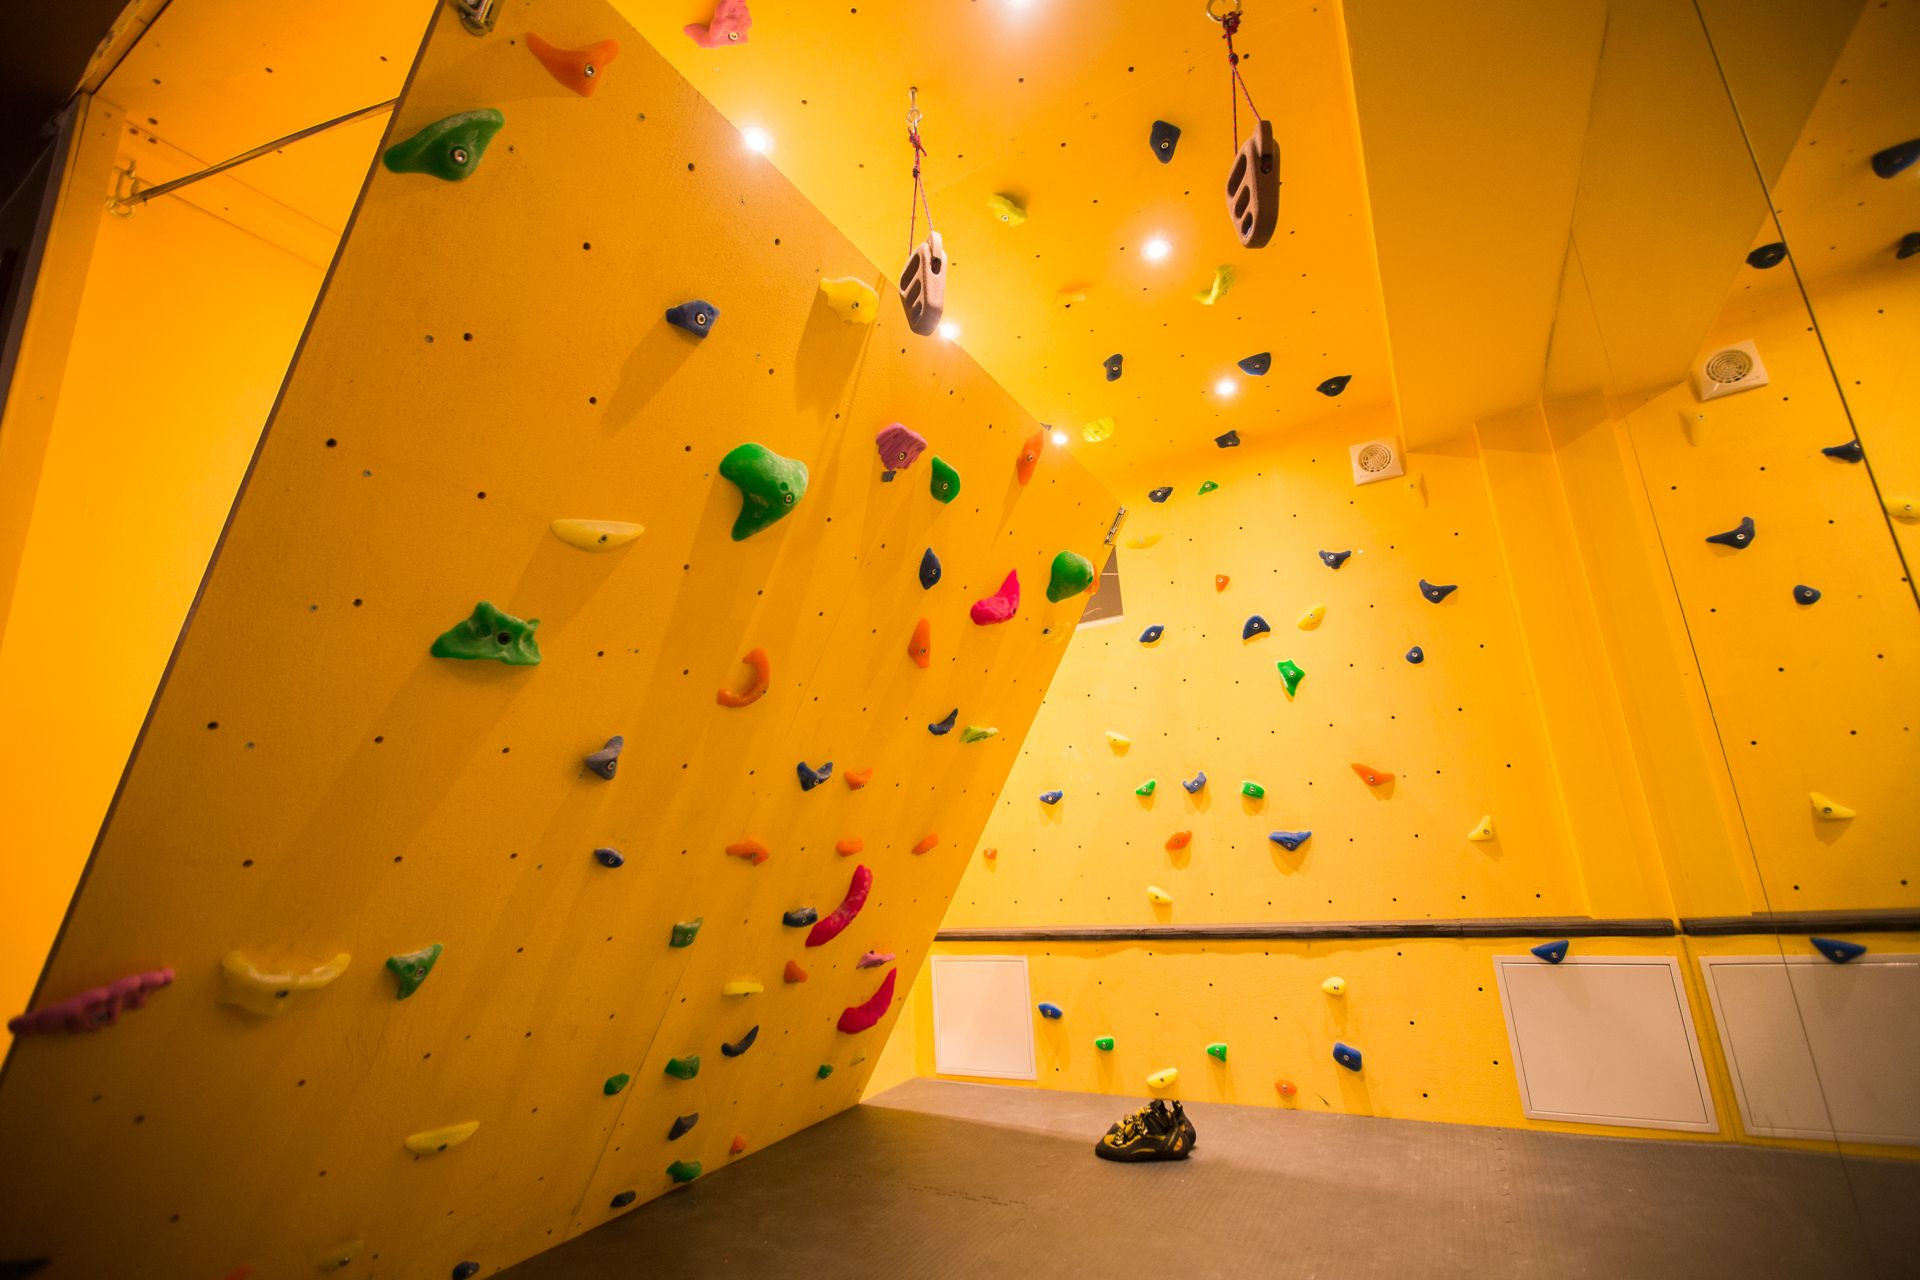 Rock Climb At Home With An Inclined Bouldering Wall Make Bouldering Wall Bouldering Home Climbing Wall